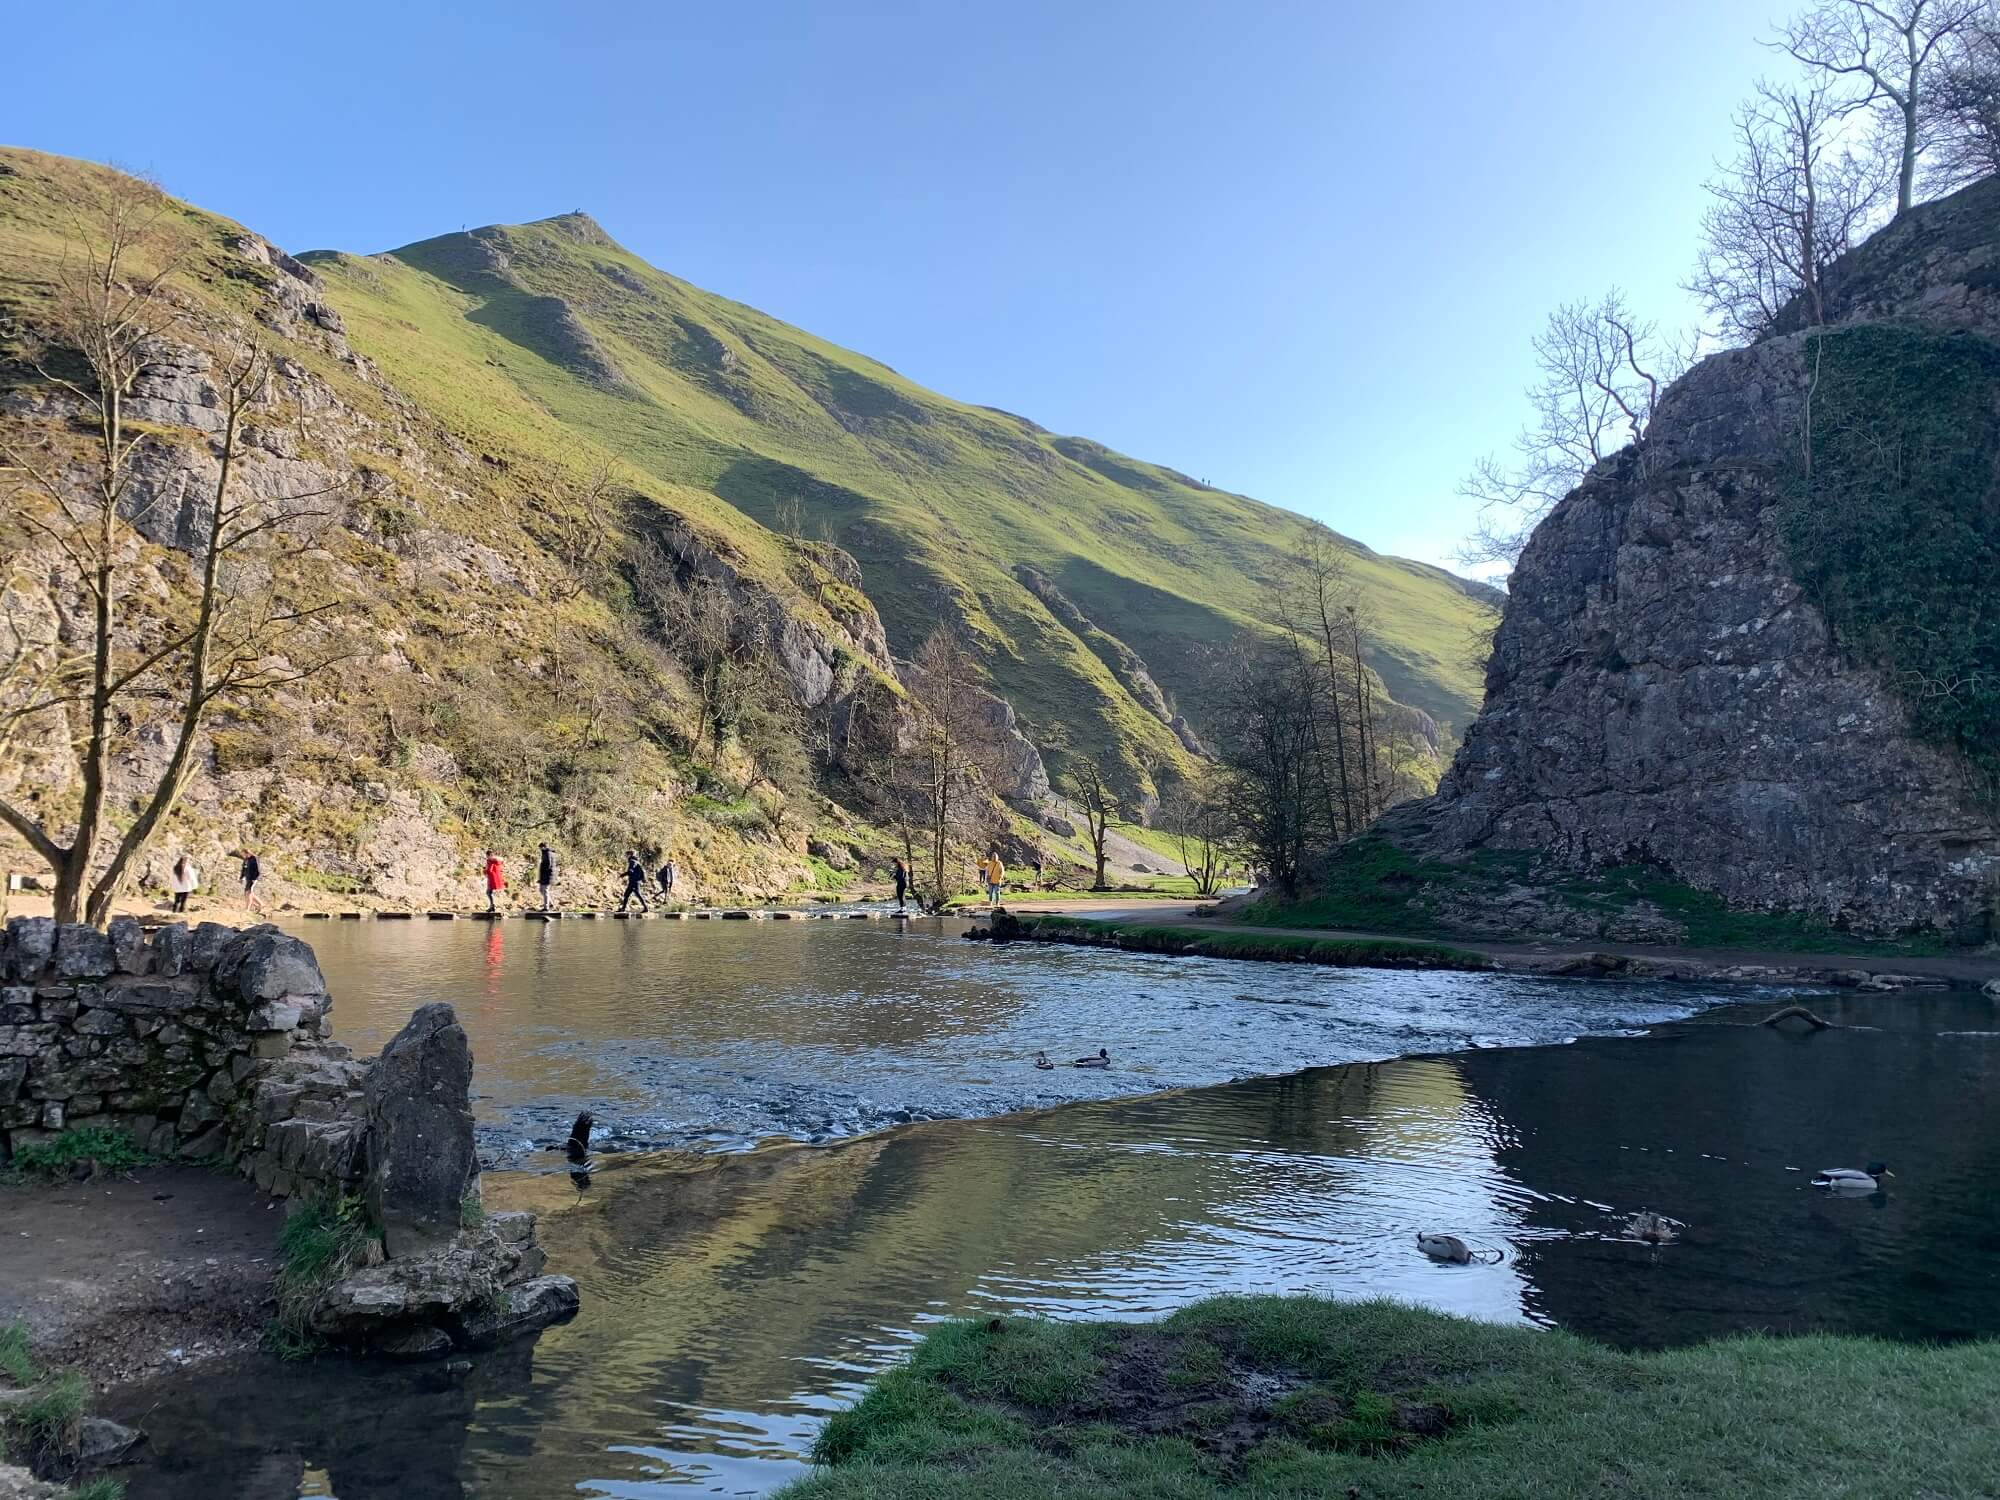 View of people walking over stepping stones at Dovedale